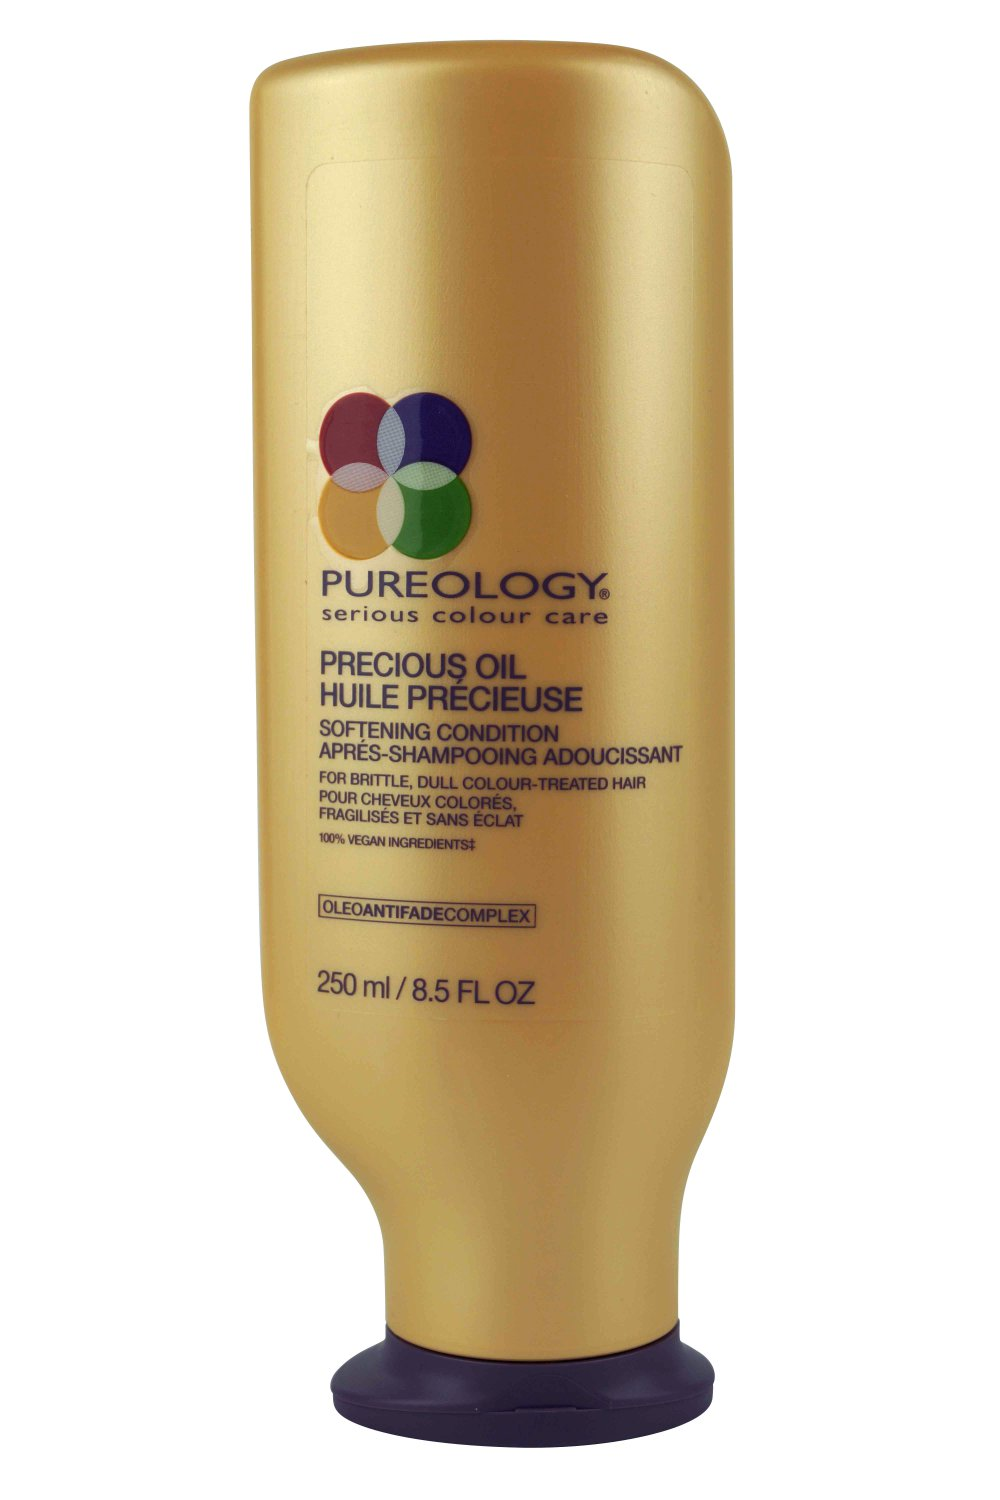 Pureology Precious Oil Softening Conditioner 8.5 oz